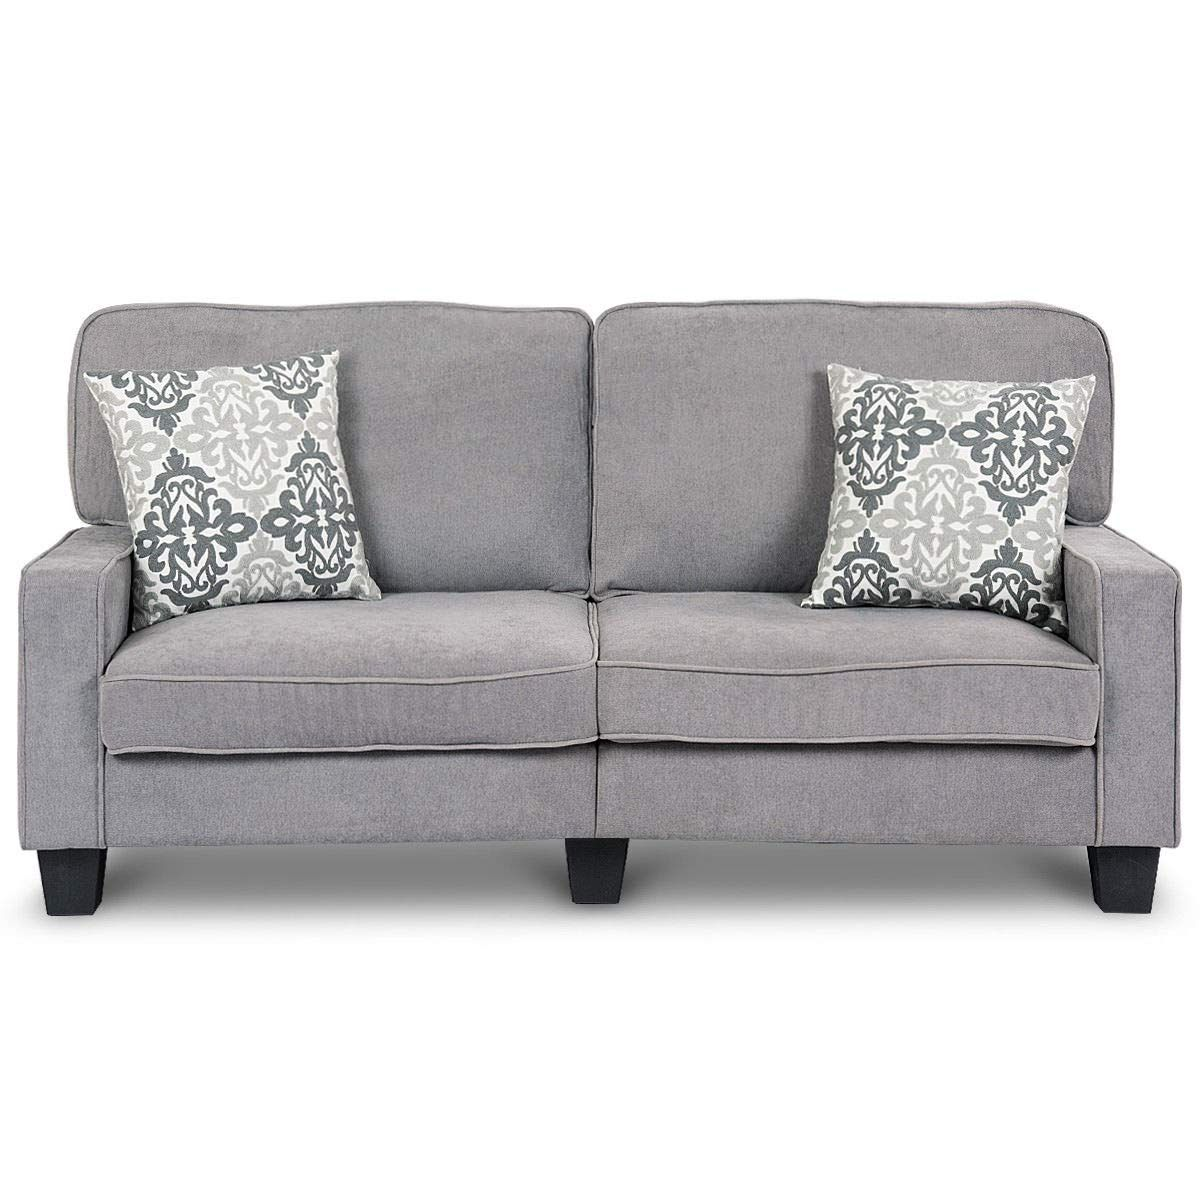 Giantex Tv Futon Sofa Couch Loveseat Fabric Upholstered Removable